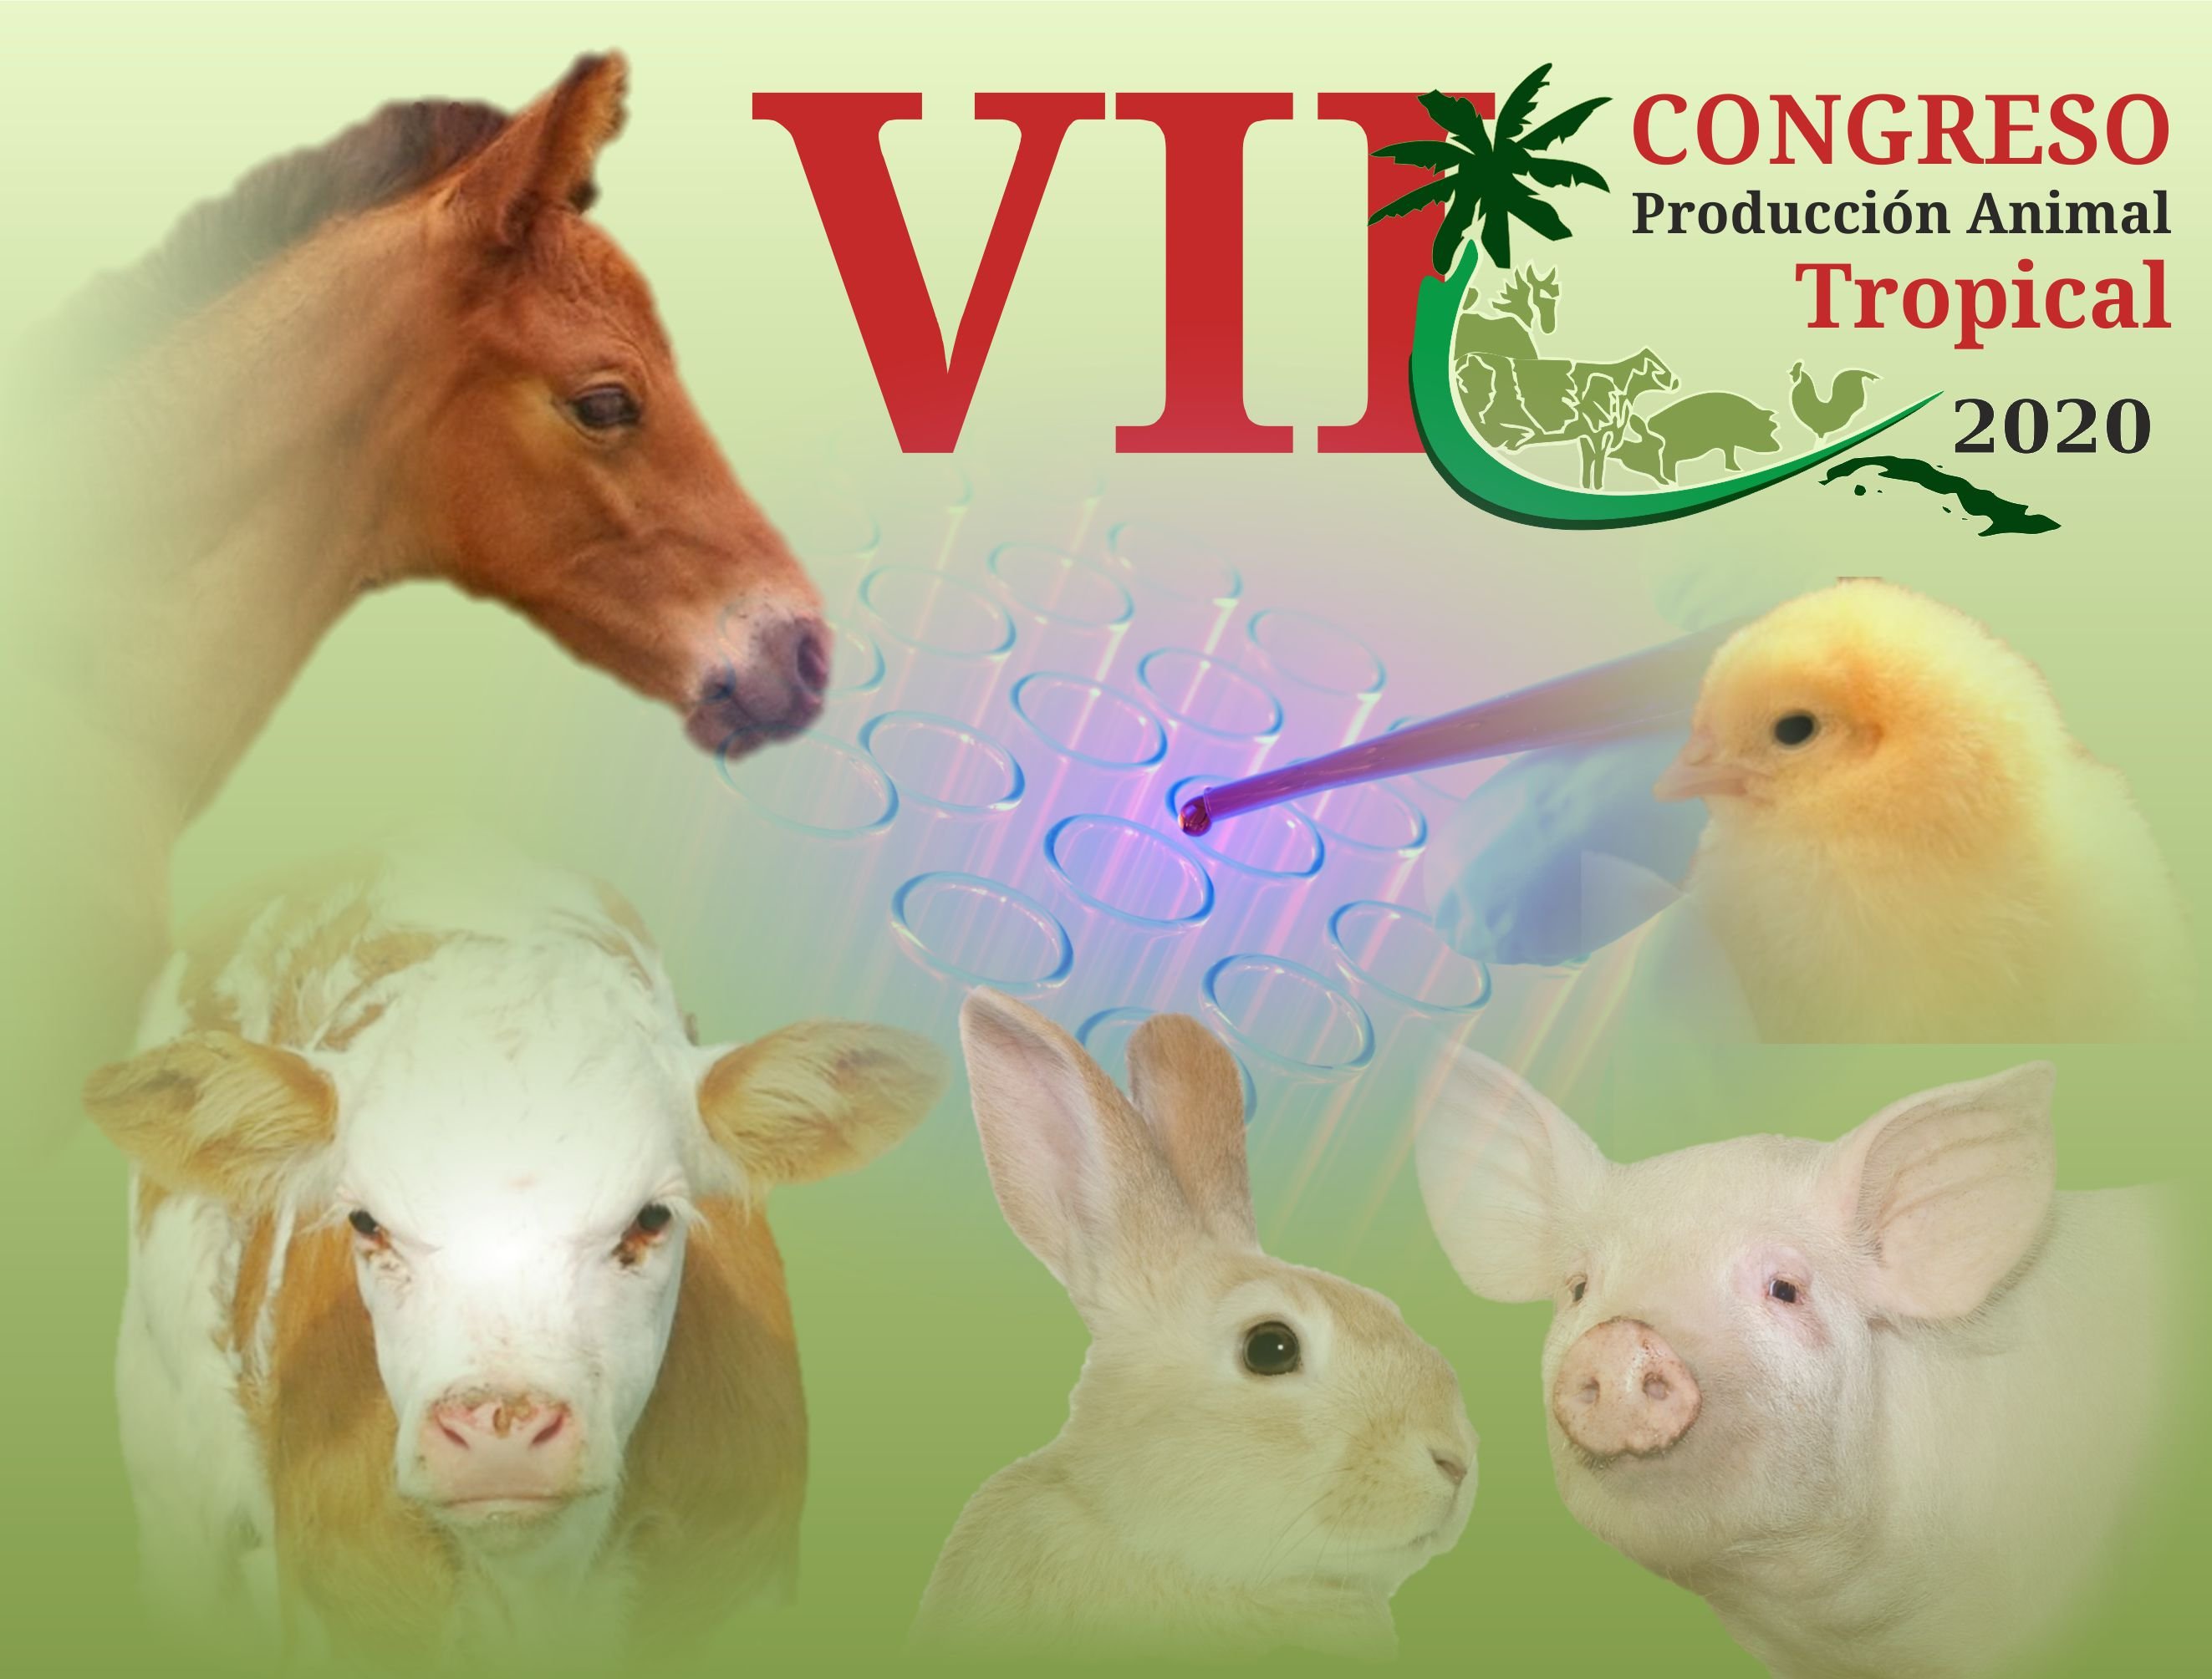 Eventos en Cuba - VII Congreso Internacional de Producción Animal Tropical 2021